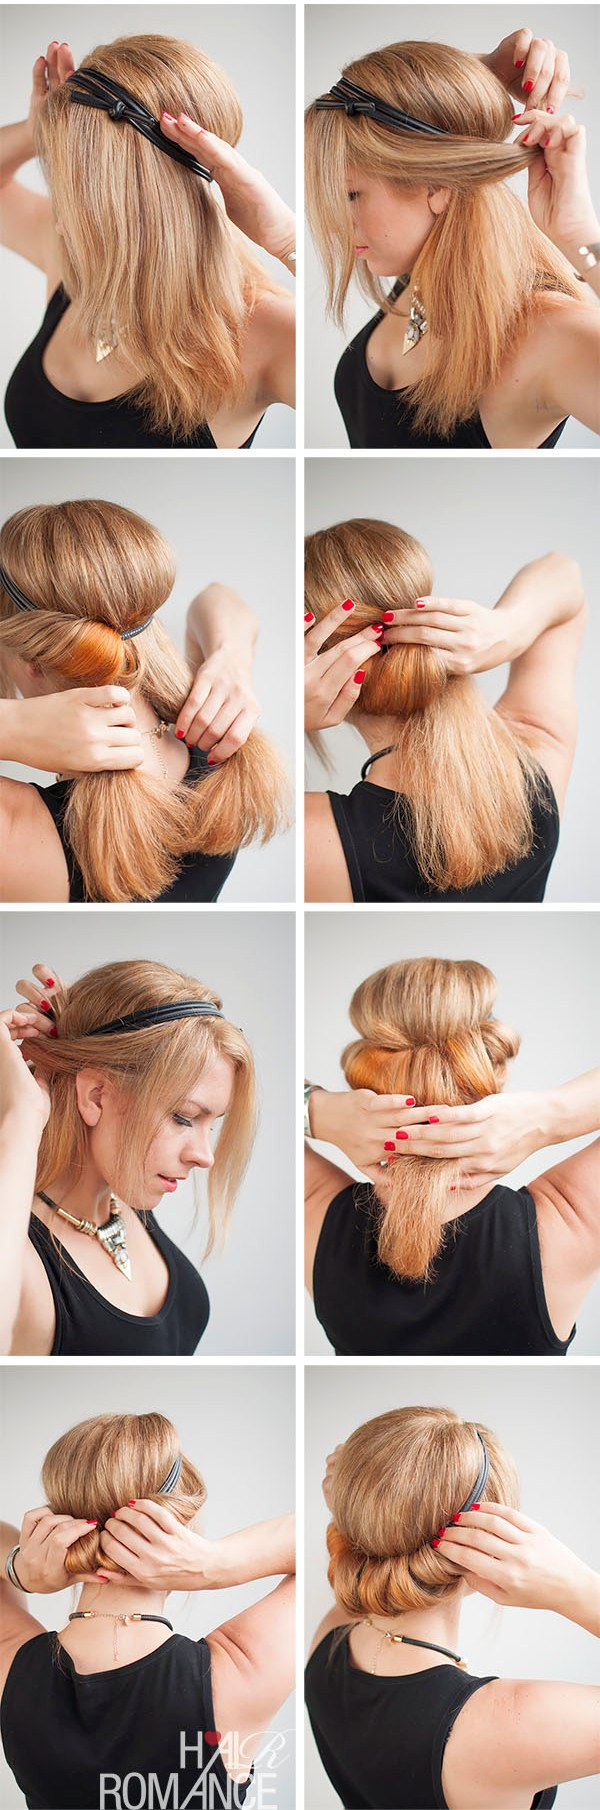 How-to-do-a-rolled-updo-Hairstyle-tutorial